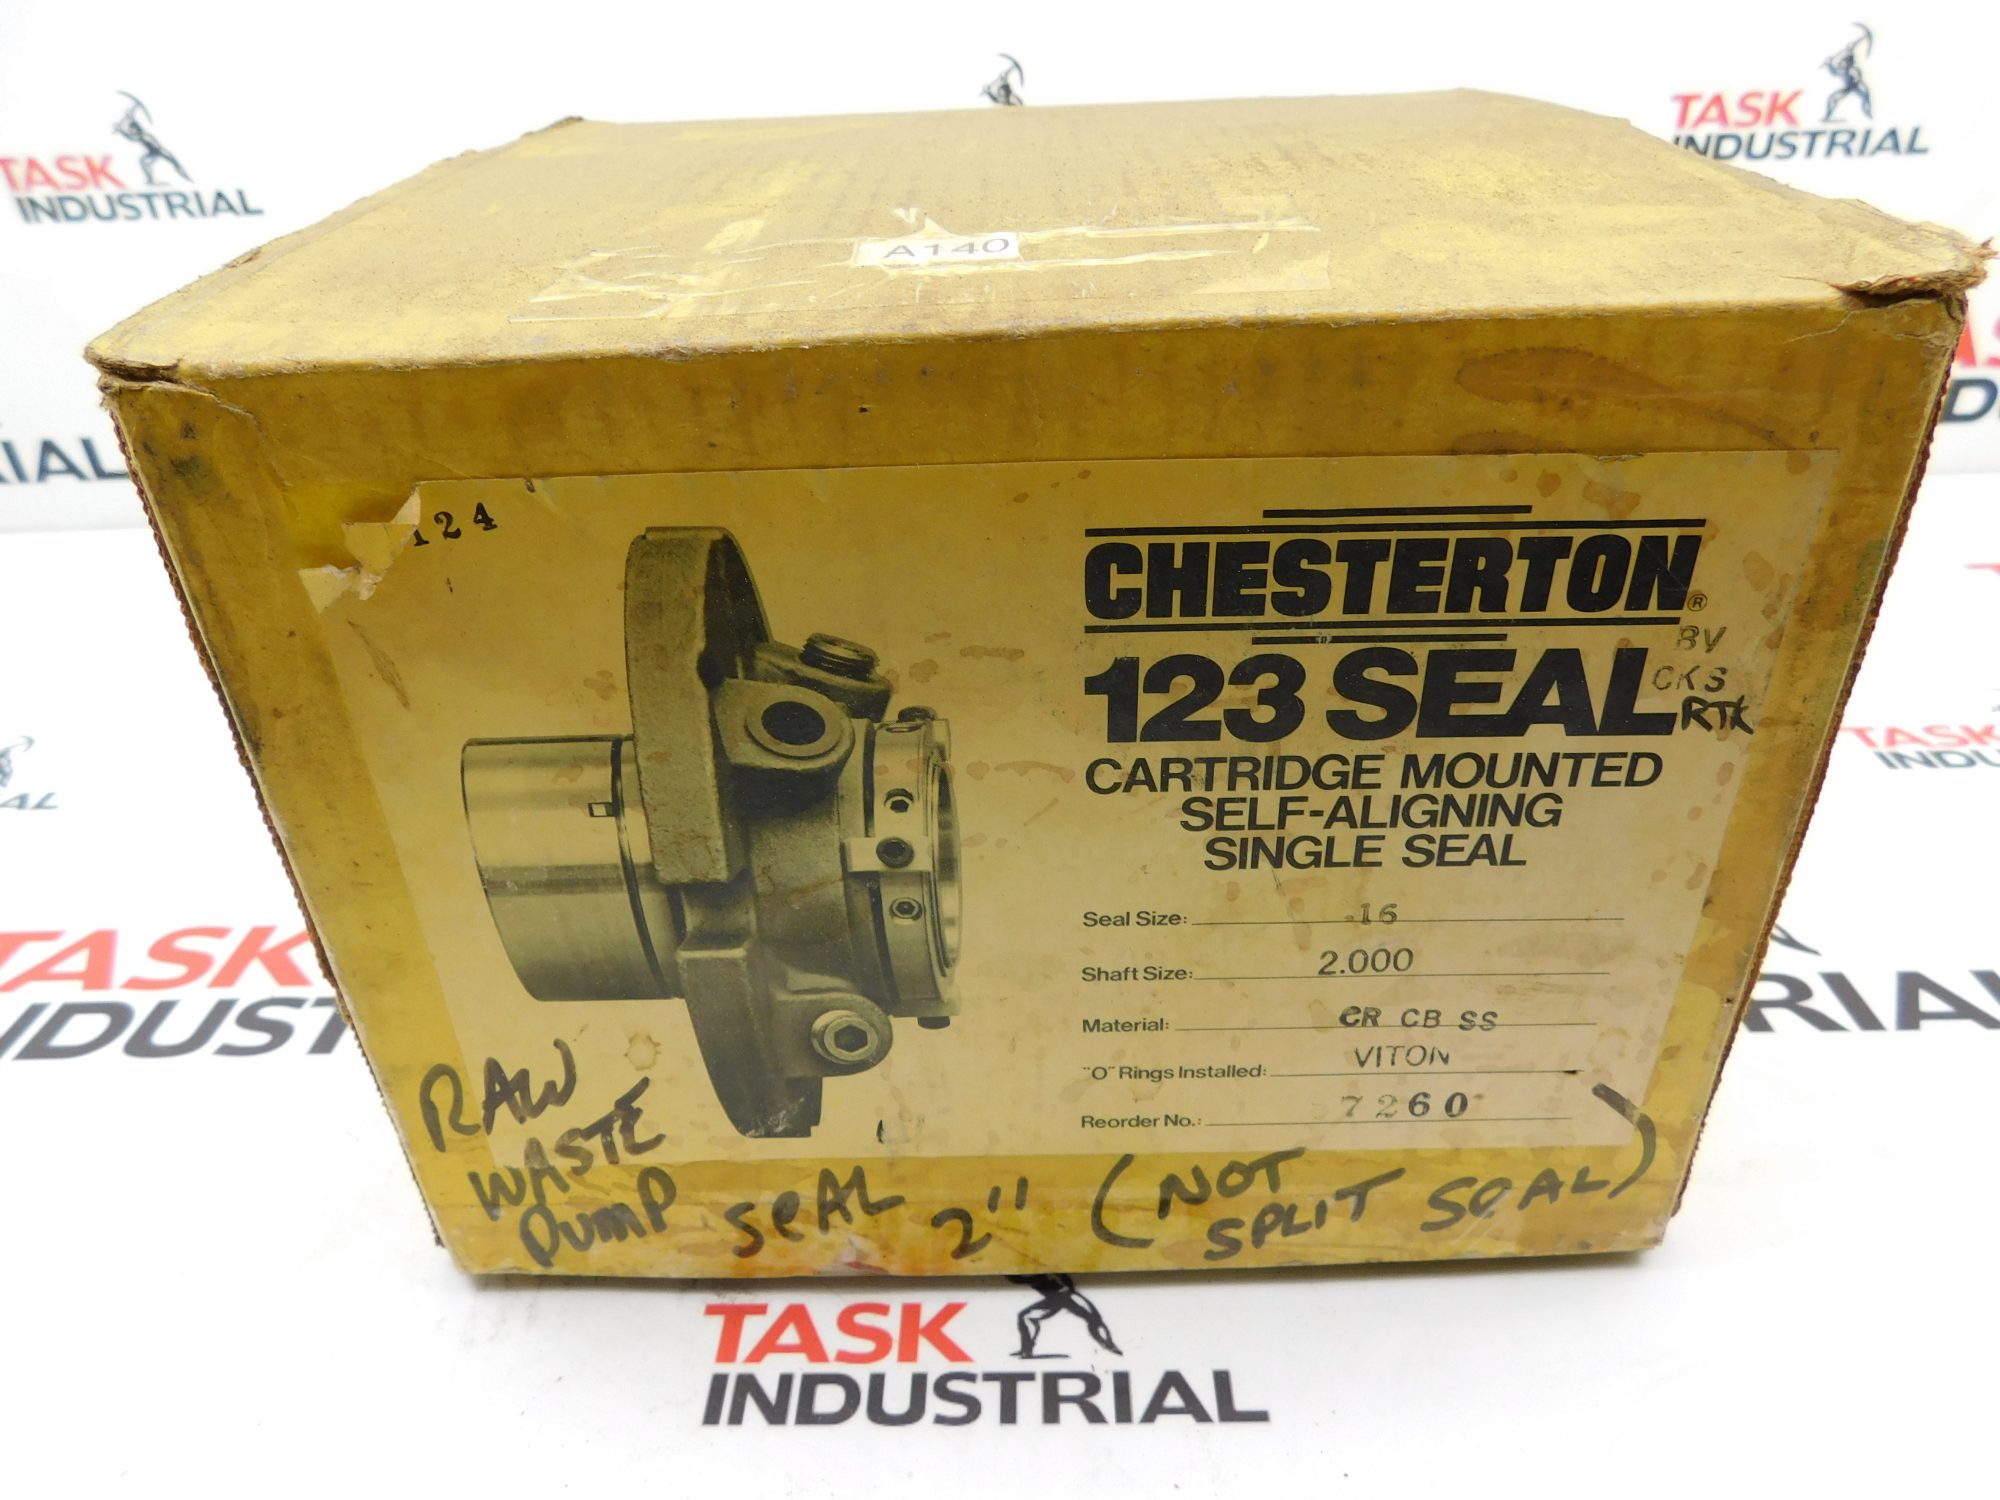 Chesterton 123 Seal Shaft Size 2.000 Seal Size 16 Cartridge Mounted Self-Aligning Single Seal